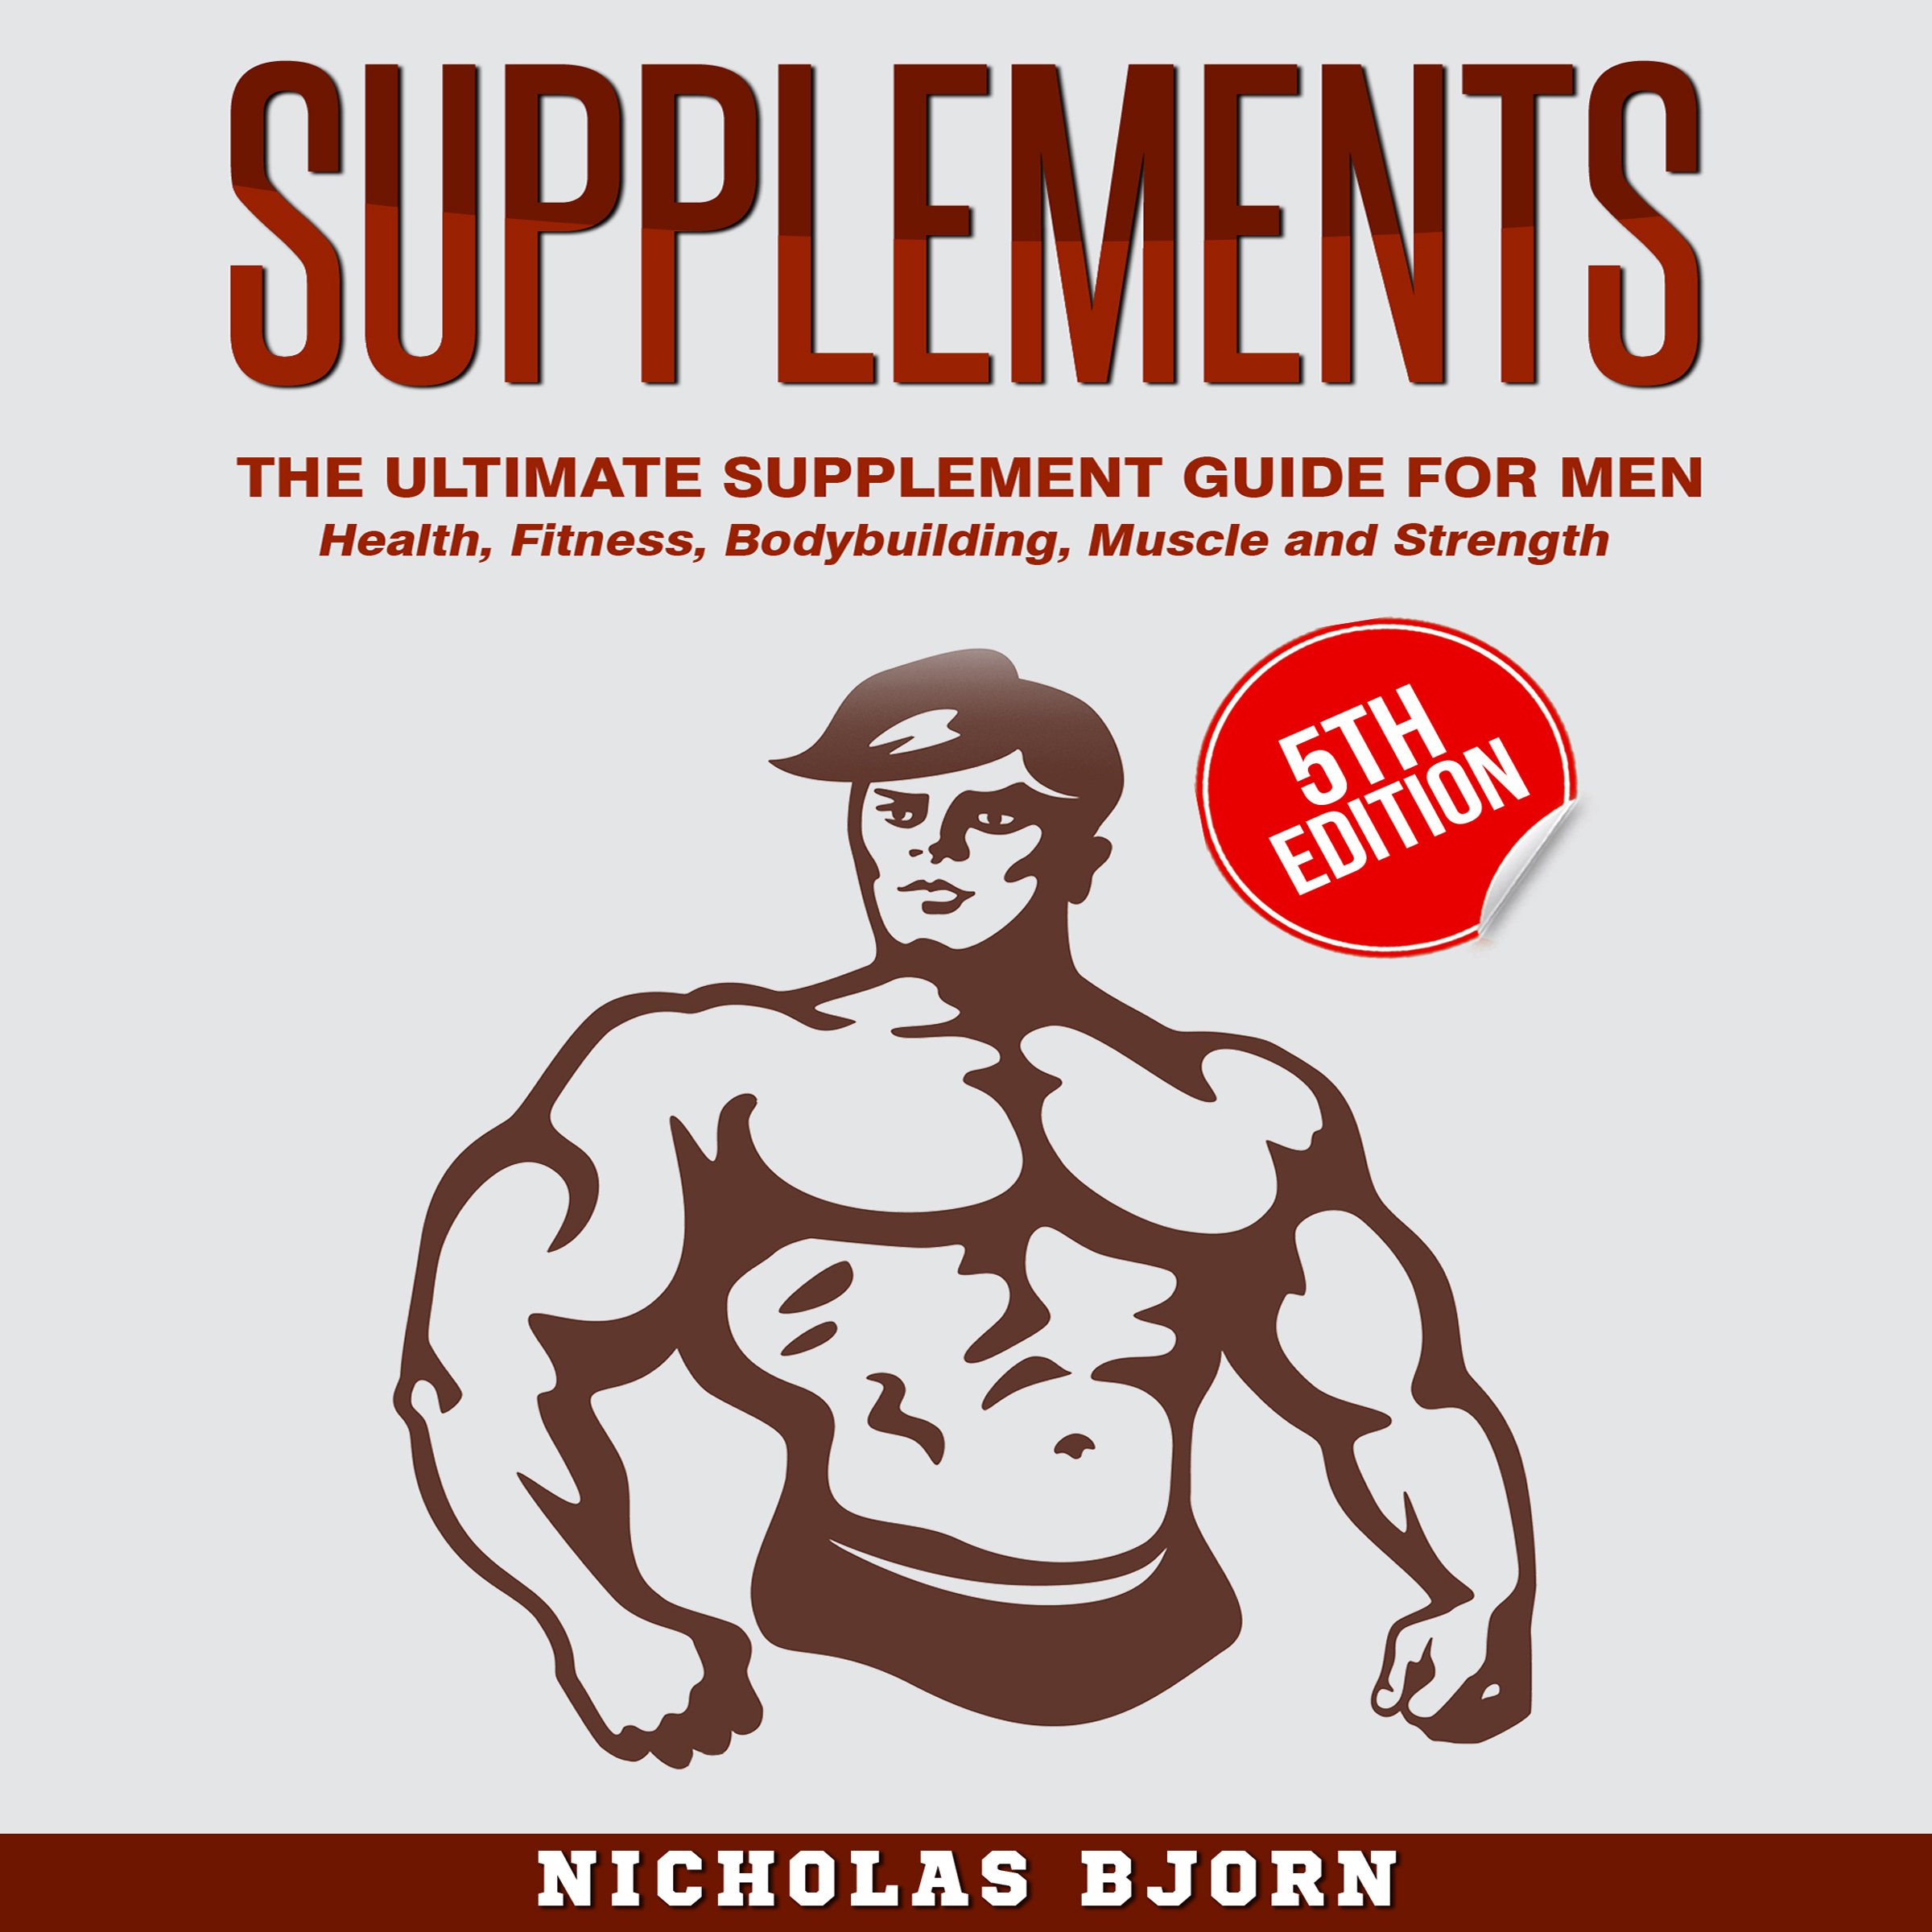 Image OfSupplements - The Ultimate Supplement Guide For Men: Health, Fitness, Bodybuilding, Muscle, And Strength